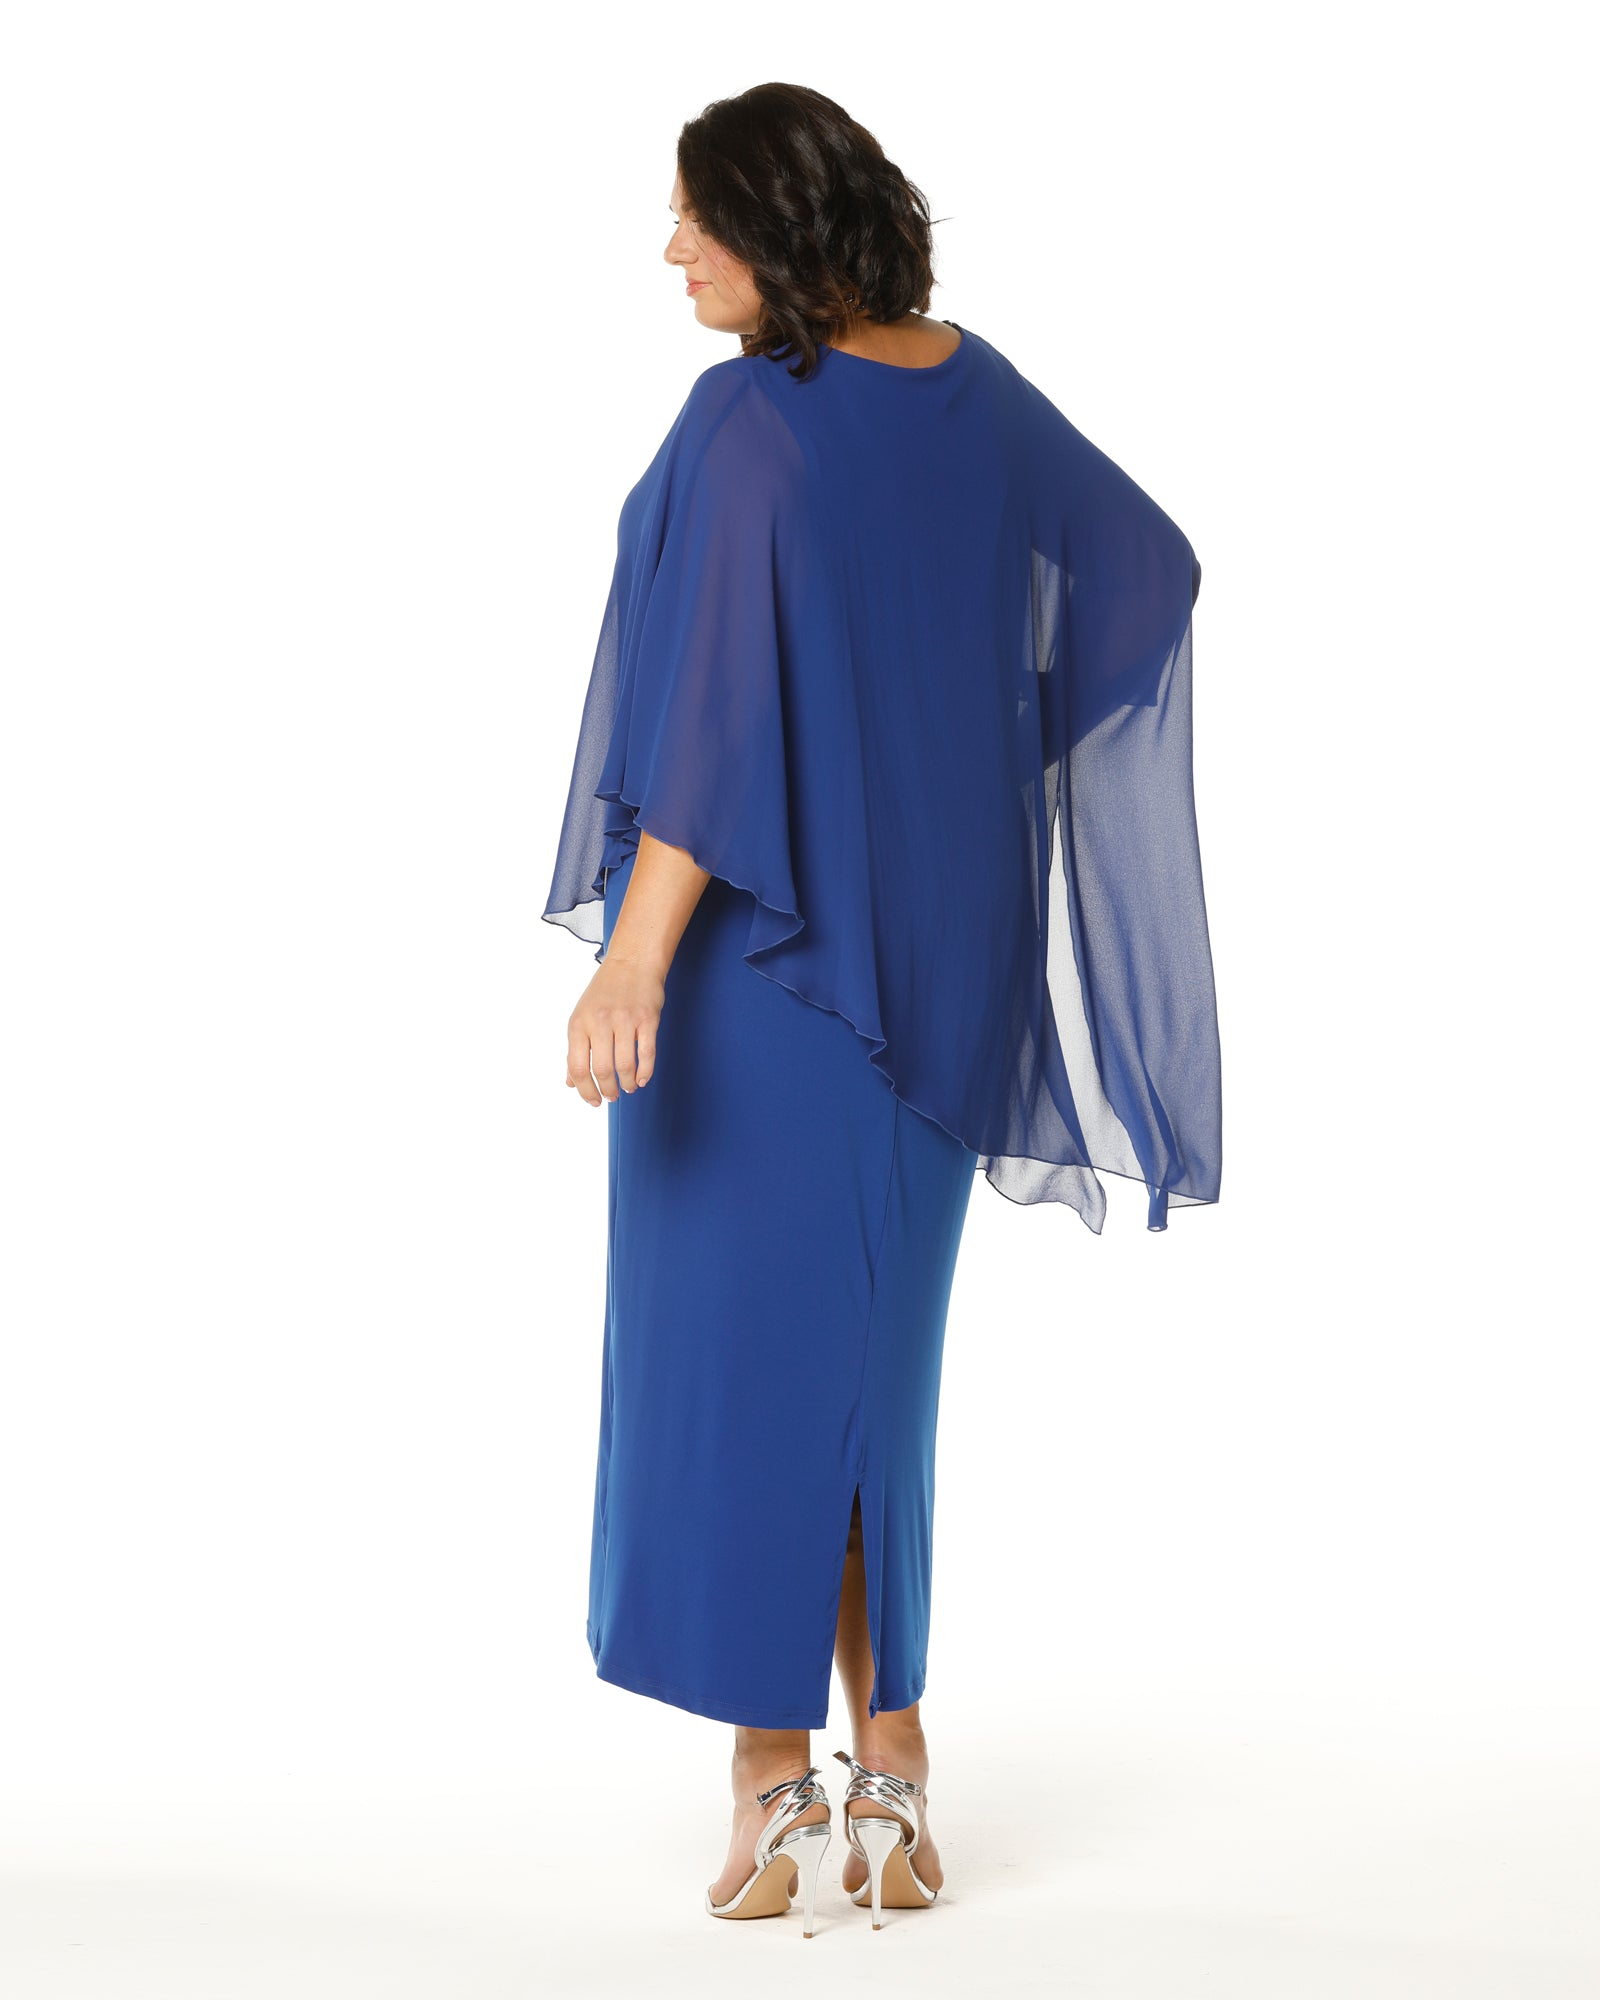 Plus size evening dress, Occasion dresses, Plus size formal dresses, RTM,  Cobalt Blue Evening Dress, RTM, Room To Move